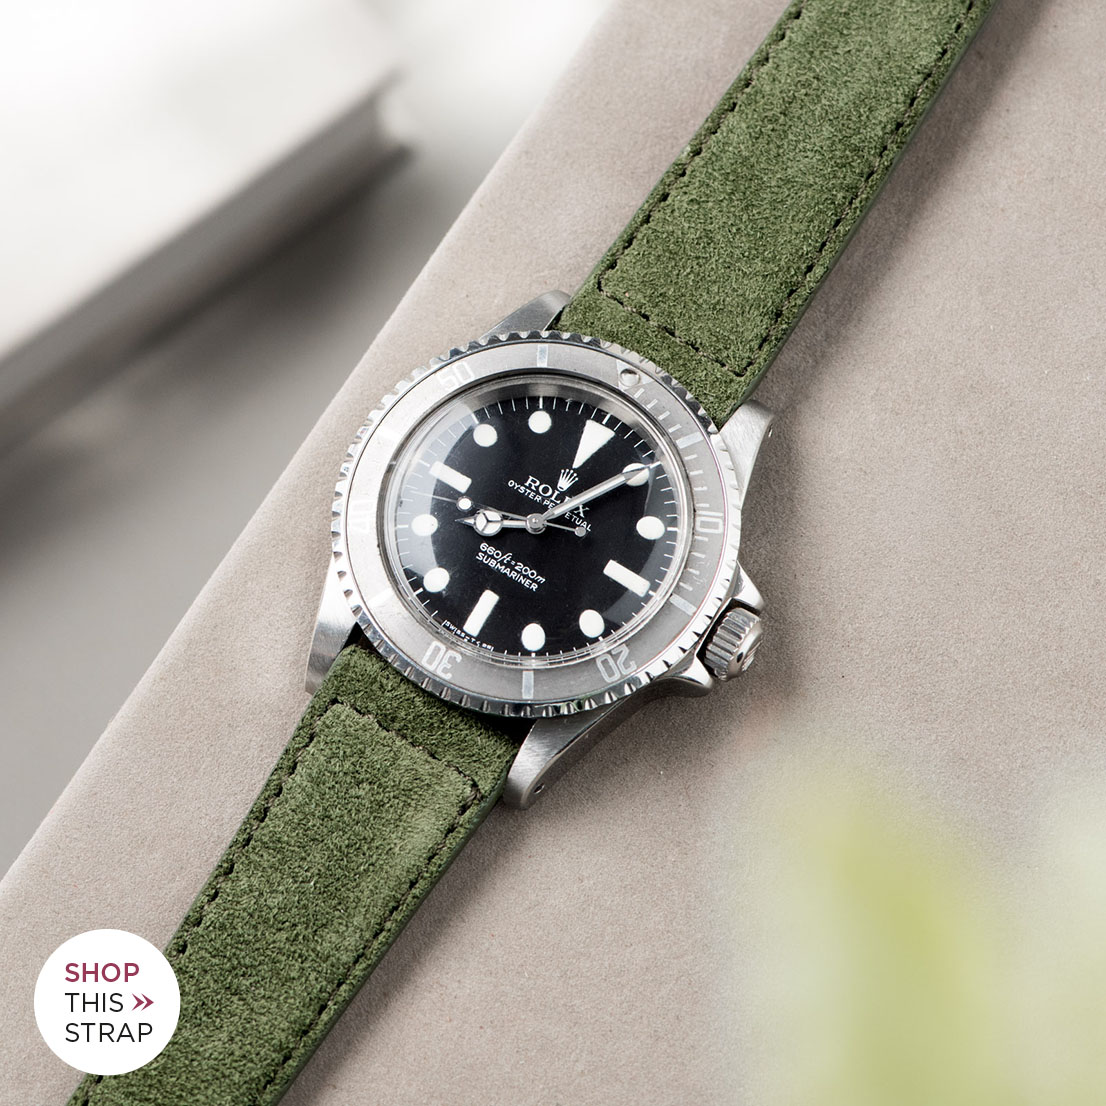 Bulang and Sons_Strap Guide_Rolex Submariner 5513 Faded_OLIVE DRAB GREEN SUEDE LEATHER WATCH STRAP